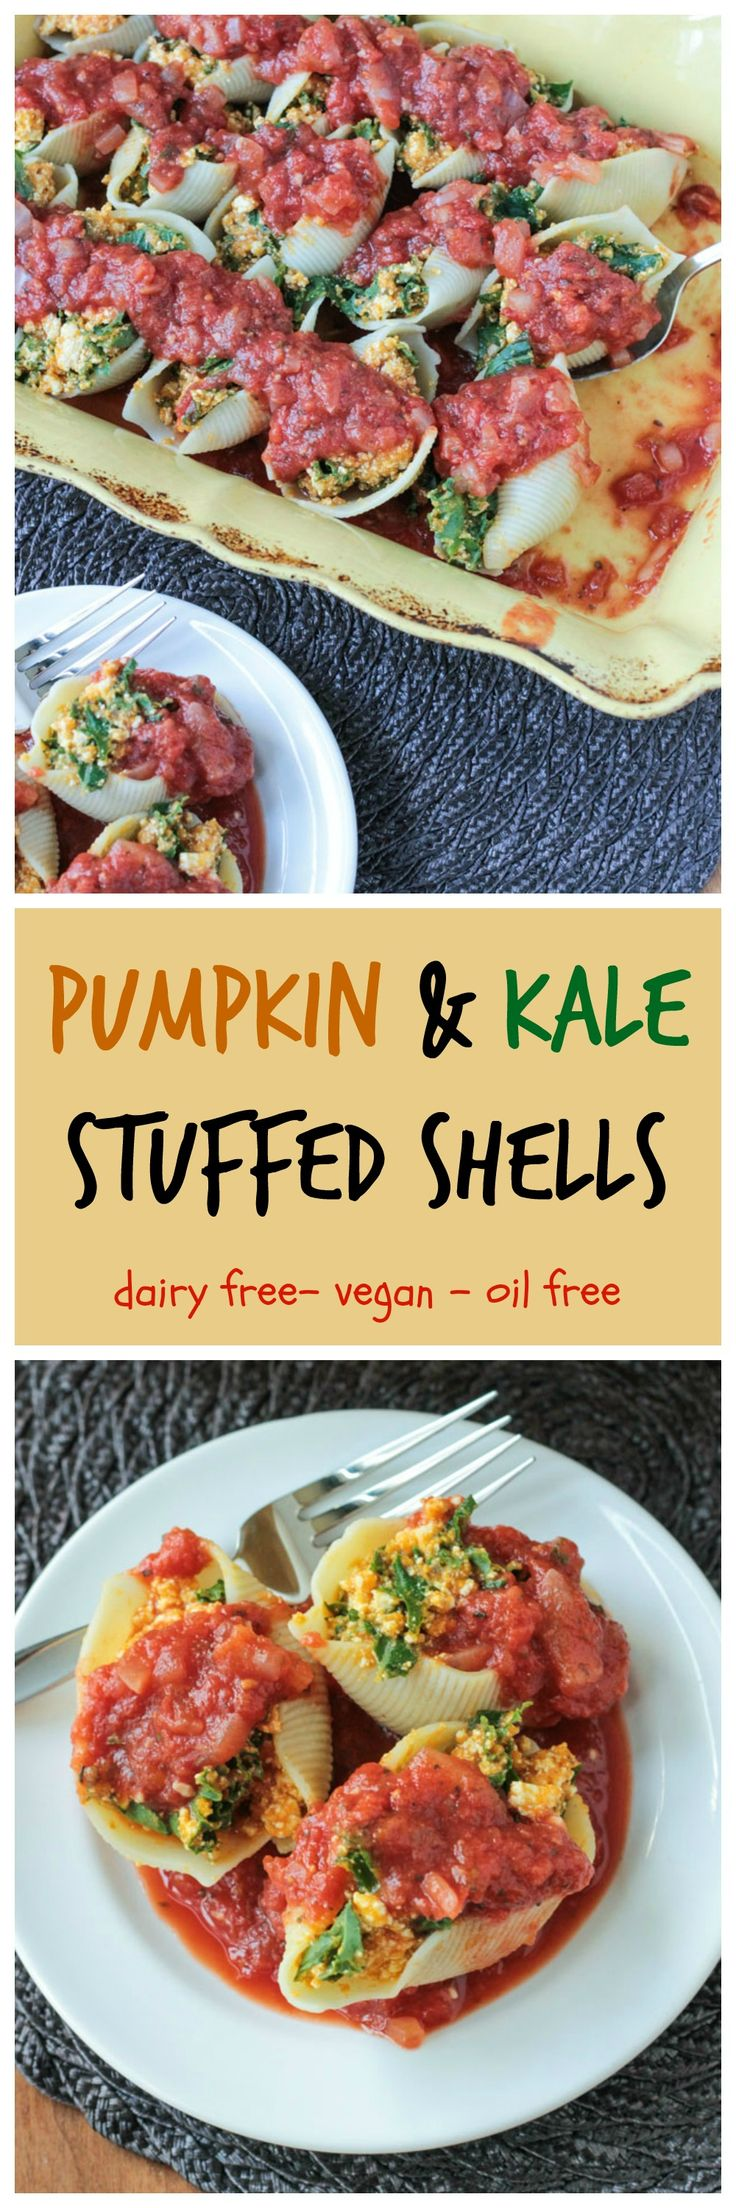 Pumpkin & Kale Stuffed Shells - a delicious #dairyfree #comfort food dish with a fall twist that's perfect anytime of year! #vegan #stuffedshells #pumpkin #kale #italian #pasta